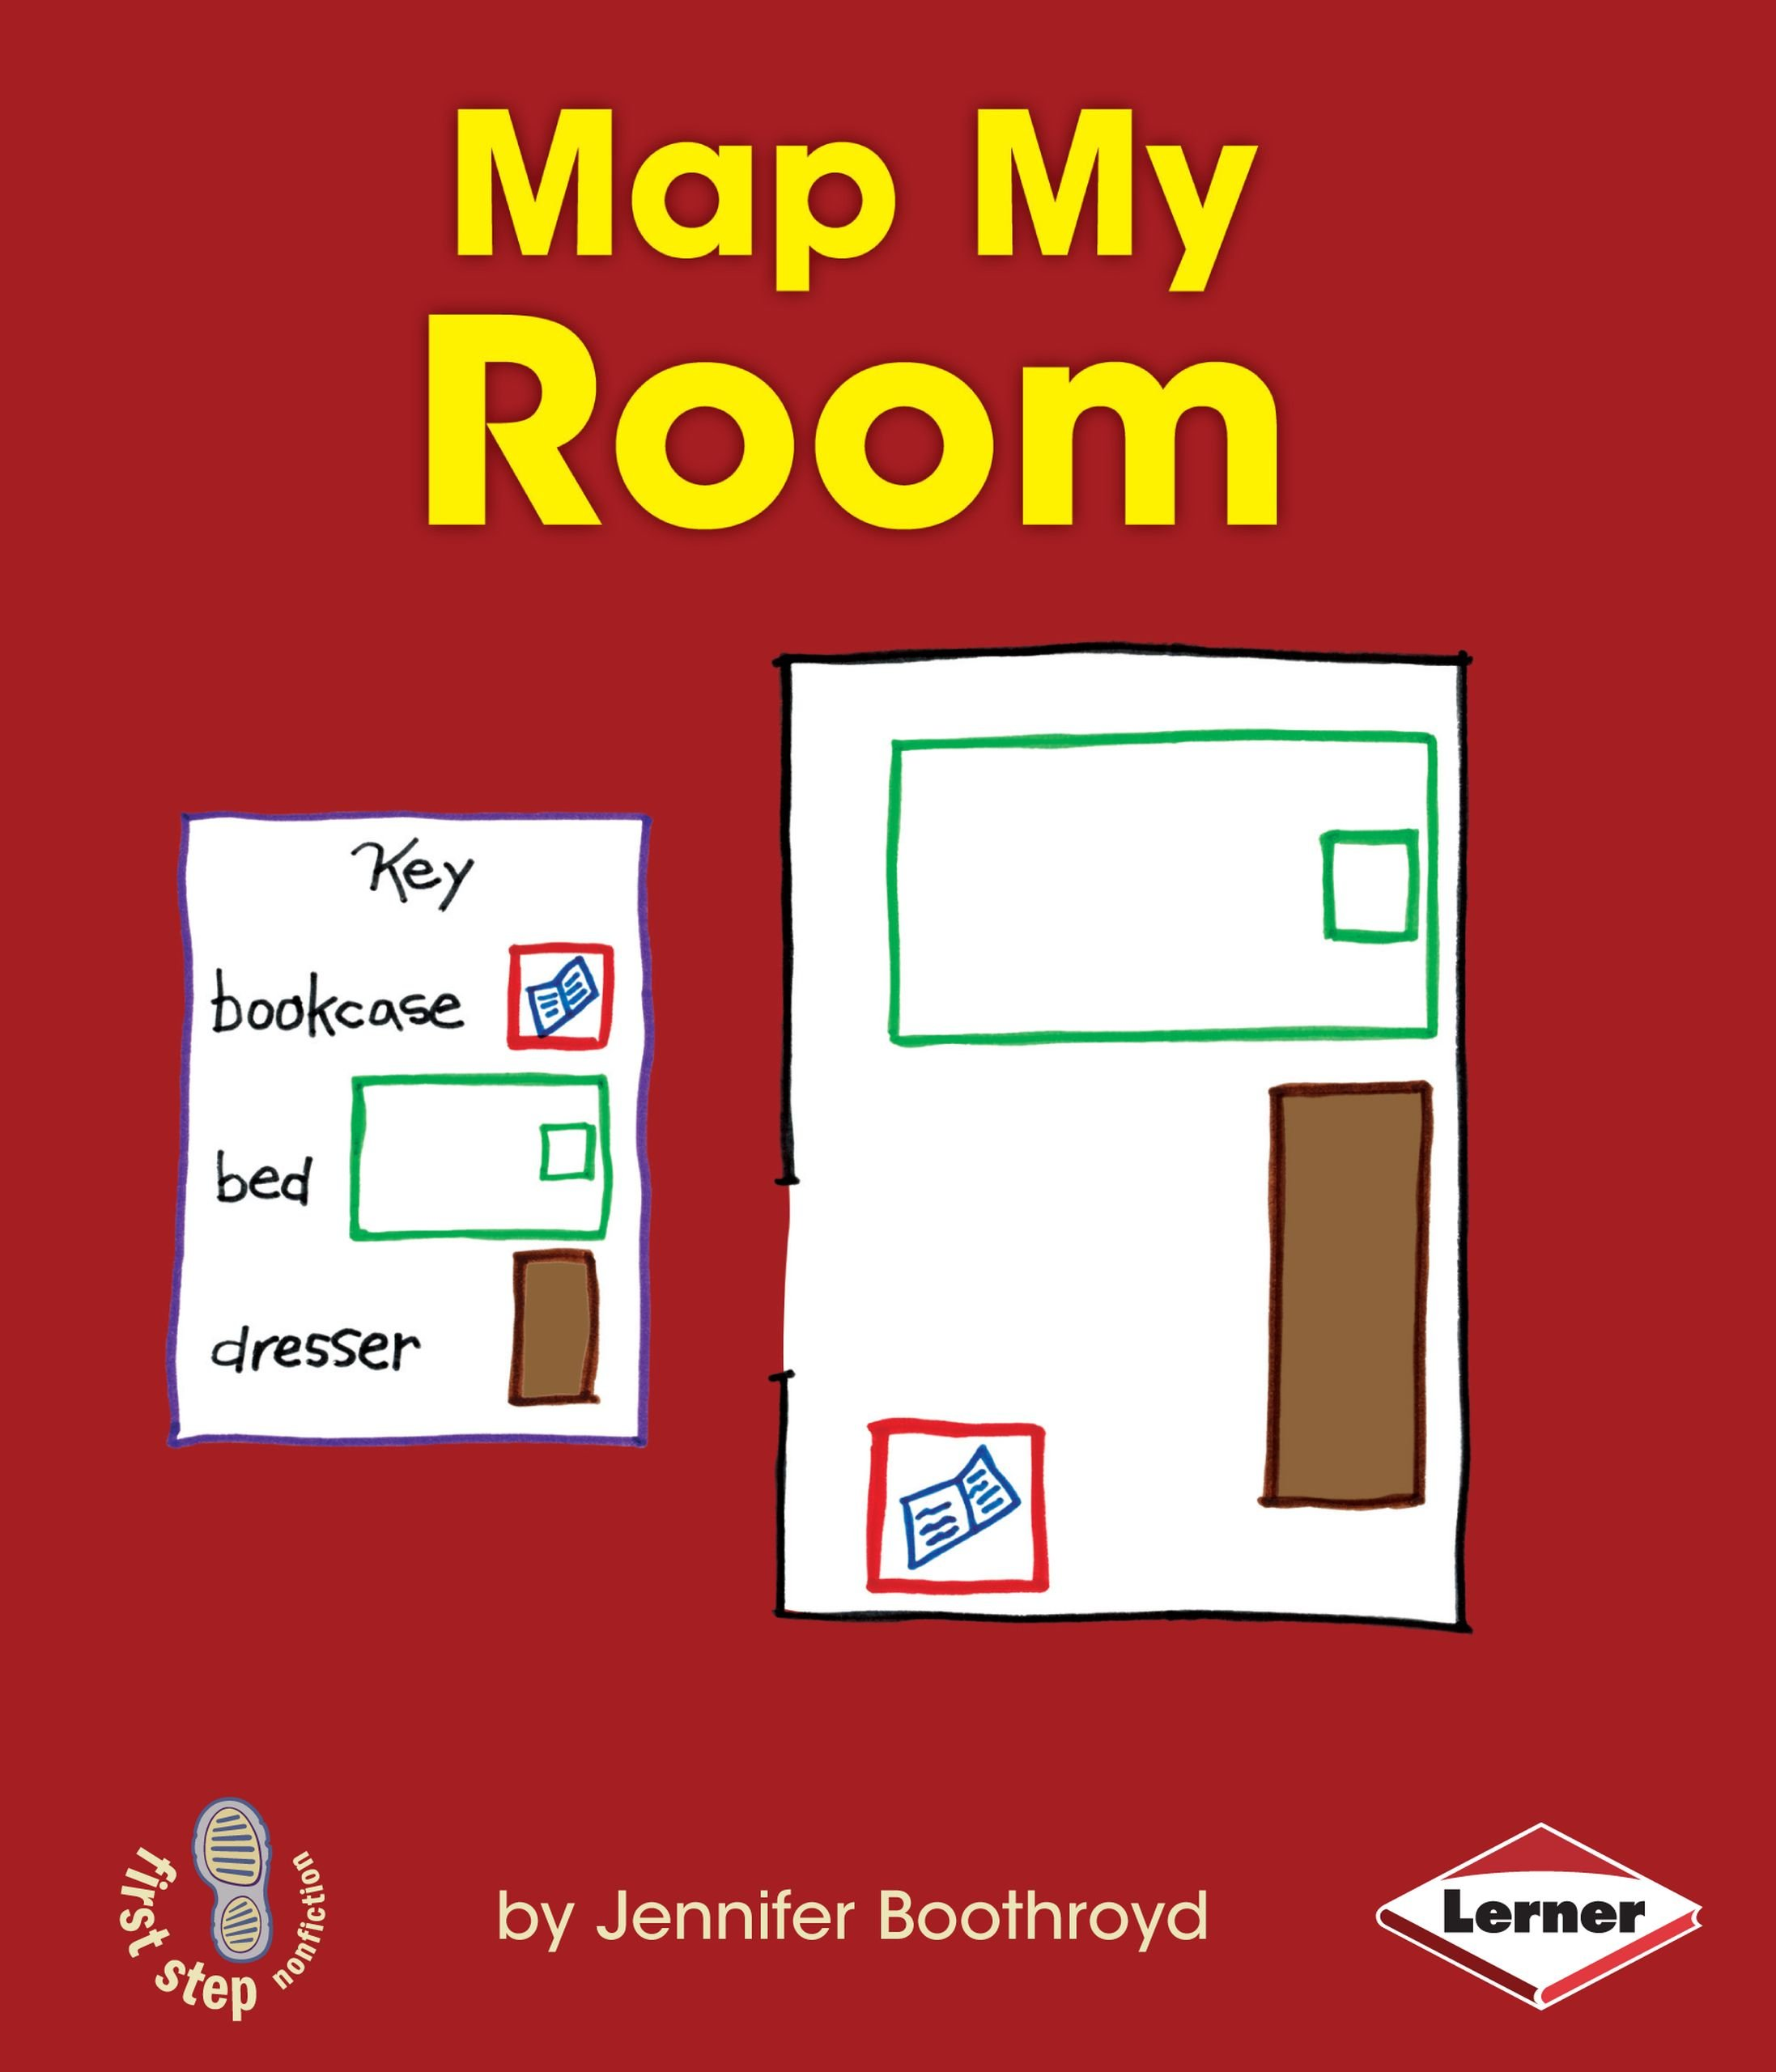 Map My Room (First Step Nonfiction - Map It Out): Jennifer ... Show Map Of My Location on map of mobile, map of google maps, map of my state, map of my place, map of my country, map of services, map of all mcdonald's locations, map of library, map of keokuk, map of sacramento, map of home, map of new orleans, map of san francisco, map of my friends, google map location, map of latitude, map of dallas, tx, map of my house, map of san diego, map of my area,